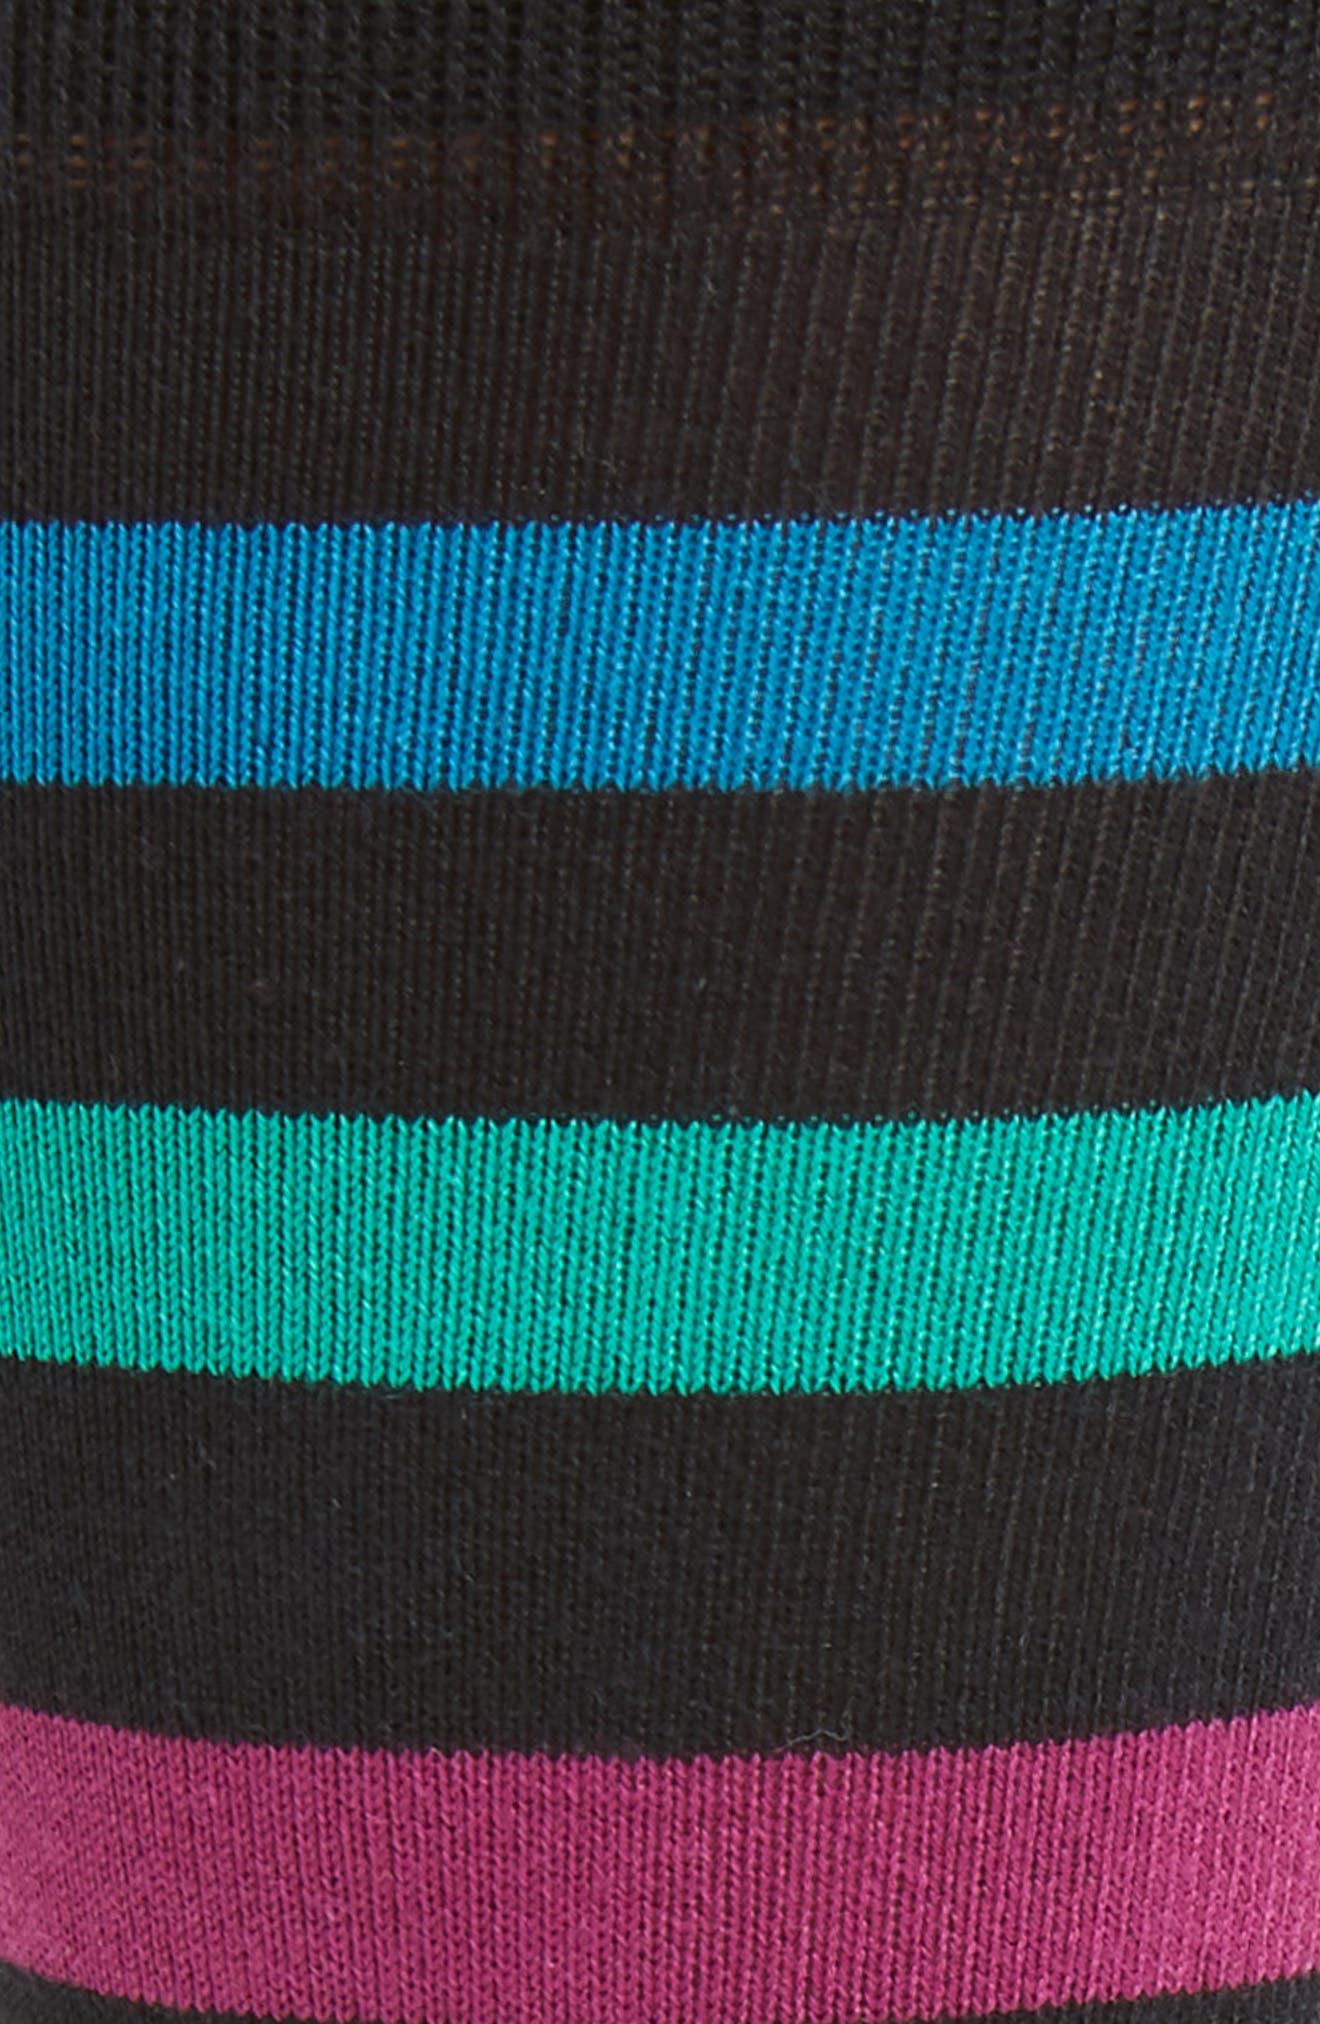 Look Stripe Socks,                             Alternate thumbnail 2, color,                             001